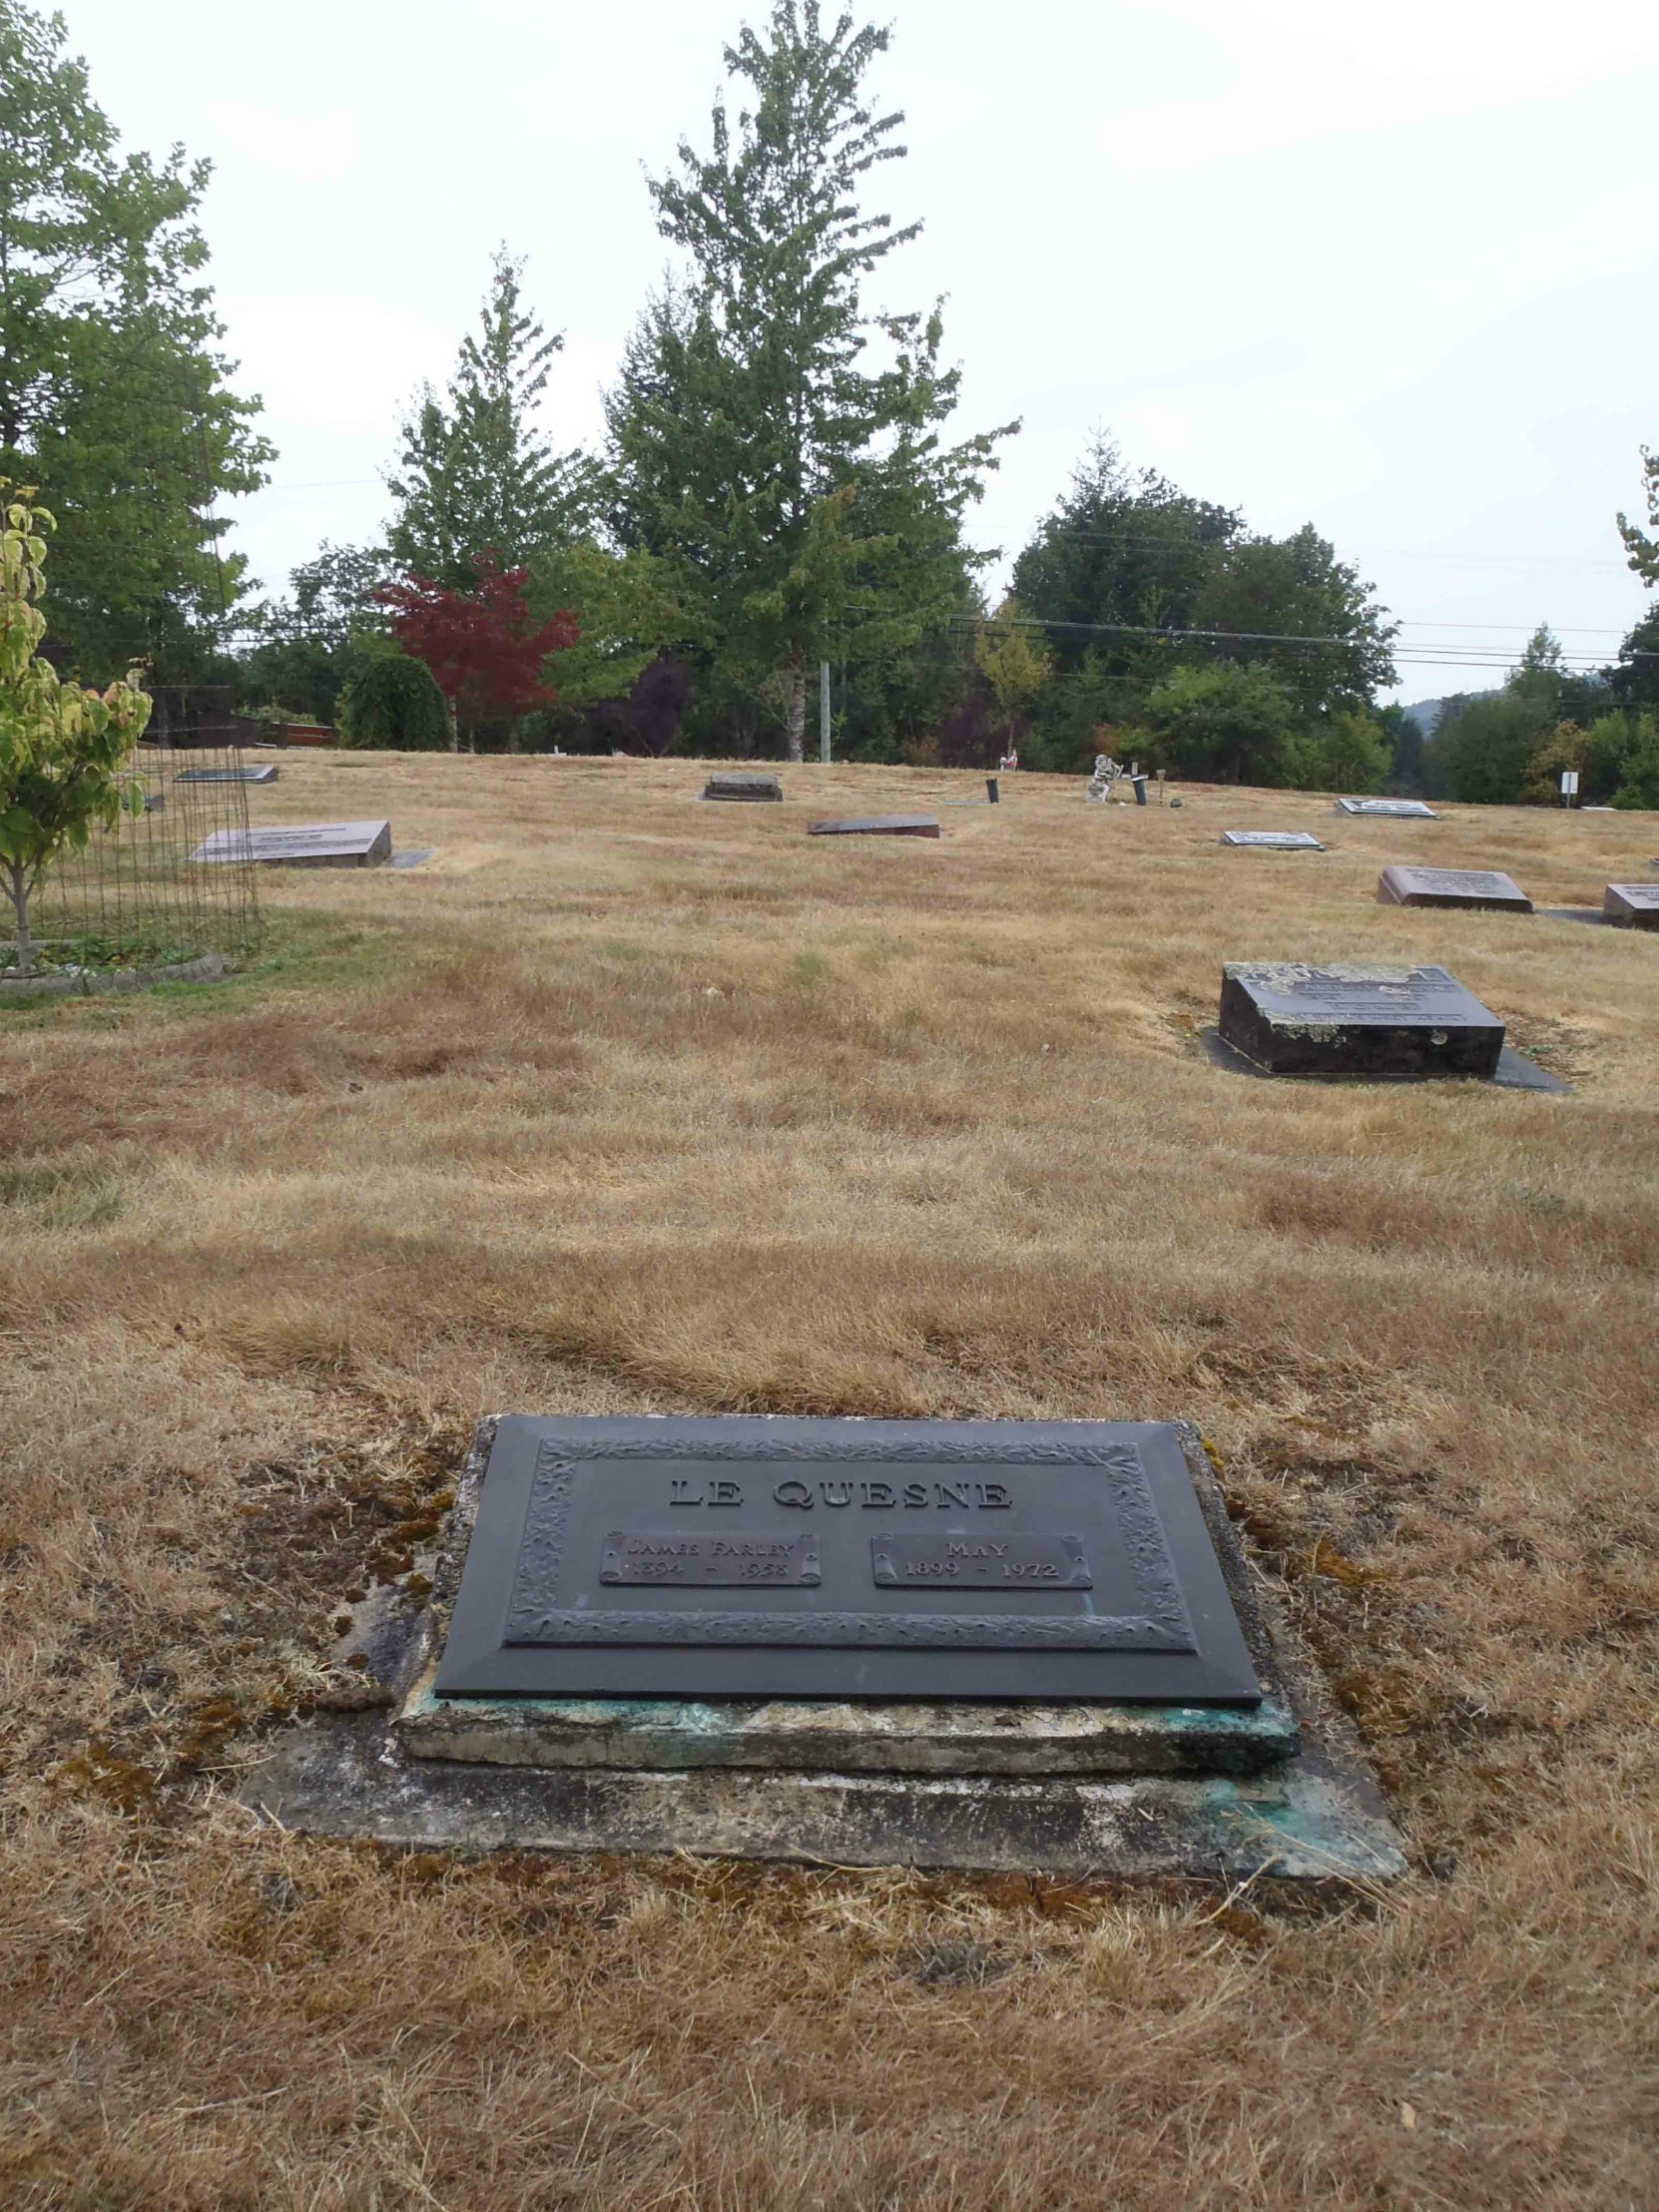 James Farley LeQuesne grave, Mountain View Cemetery, North Cowichan (photo by Temple Lodge No. 33 Historian)